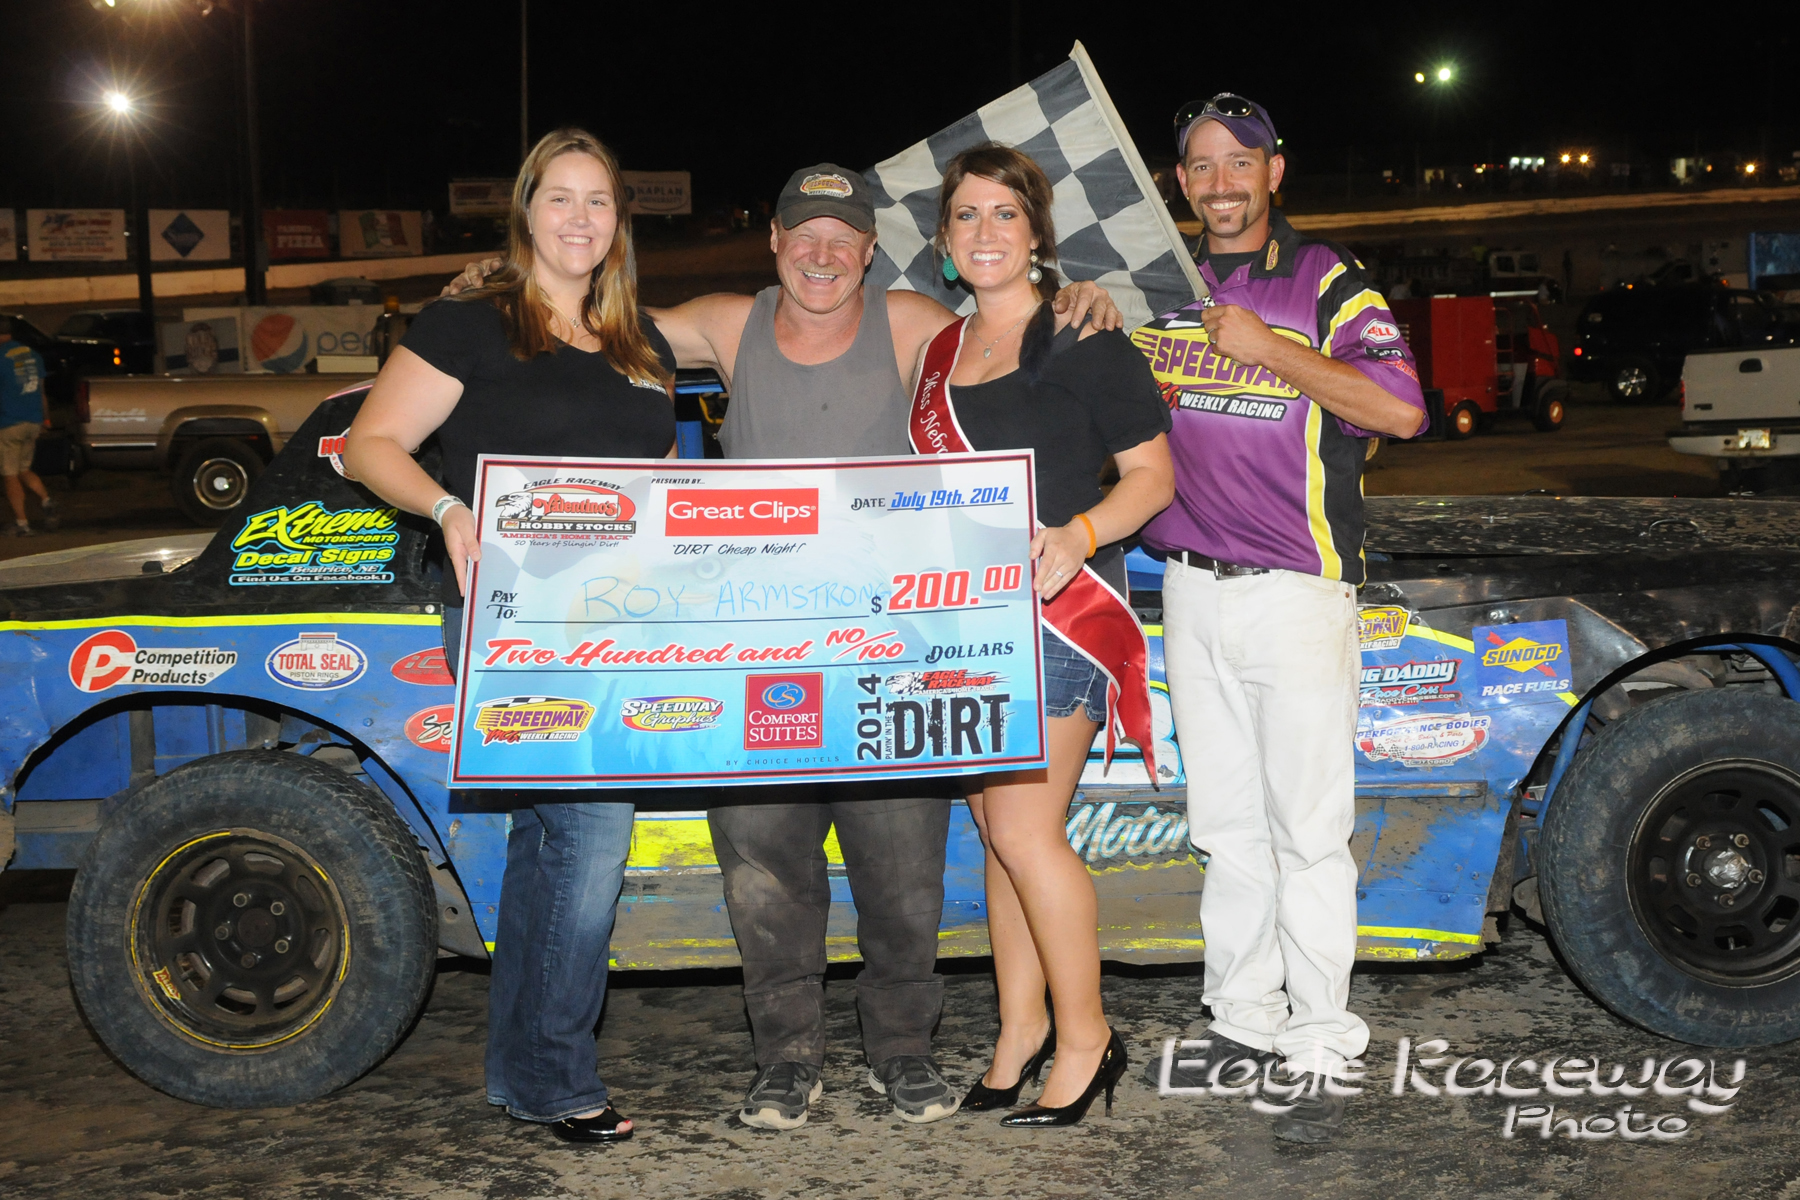 eagle-07-19-14-418-roy-armstong-with-miss-nebraska-cup-elle-patocka-and-miss-nebraska-cup-finalist-donna-hafsaas-and-flagman-billy-lloyd-joeorthphotos